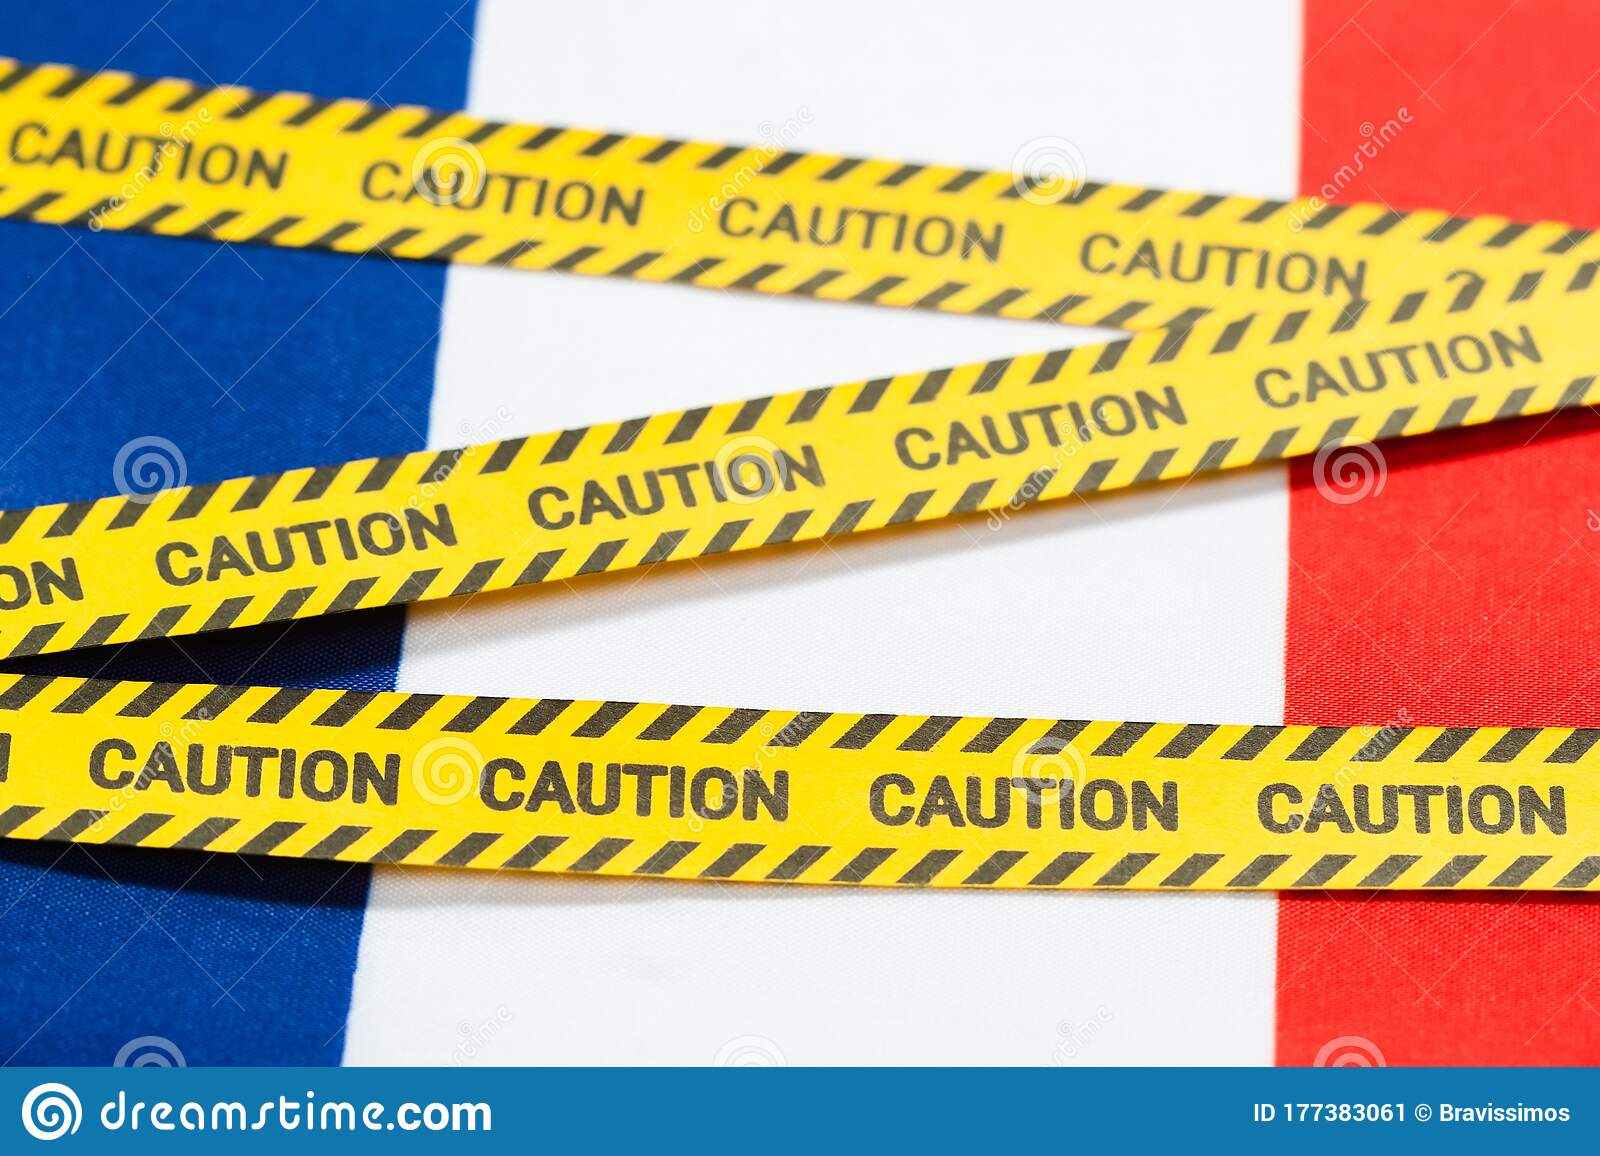 France Flag Virus 2019 Ncov Outbreak Covid 19 Pandemic Protection Stock Image Image Of Contagion Flag 177383061